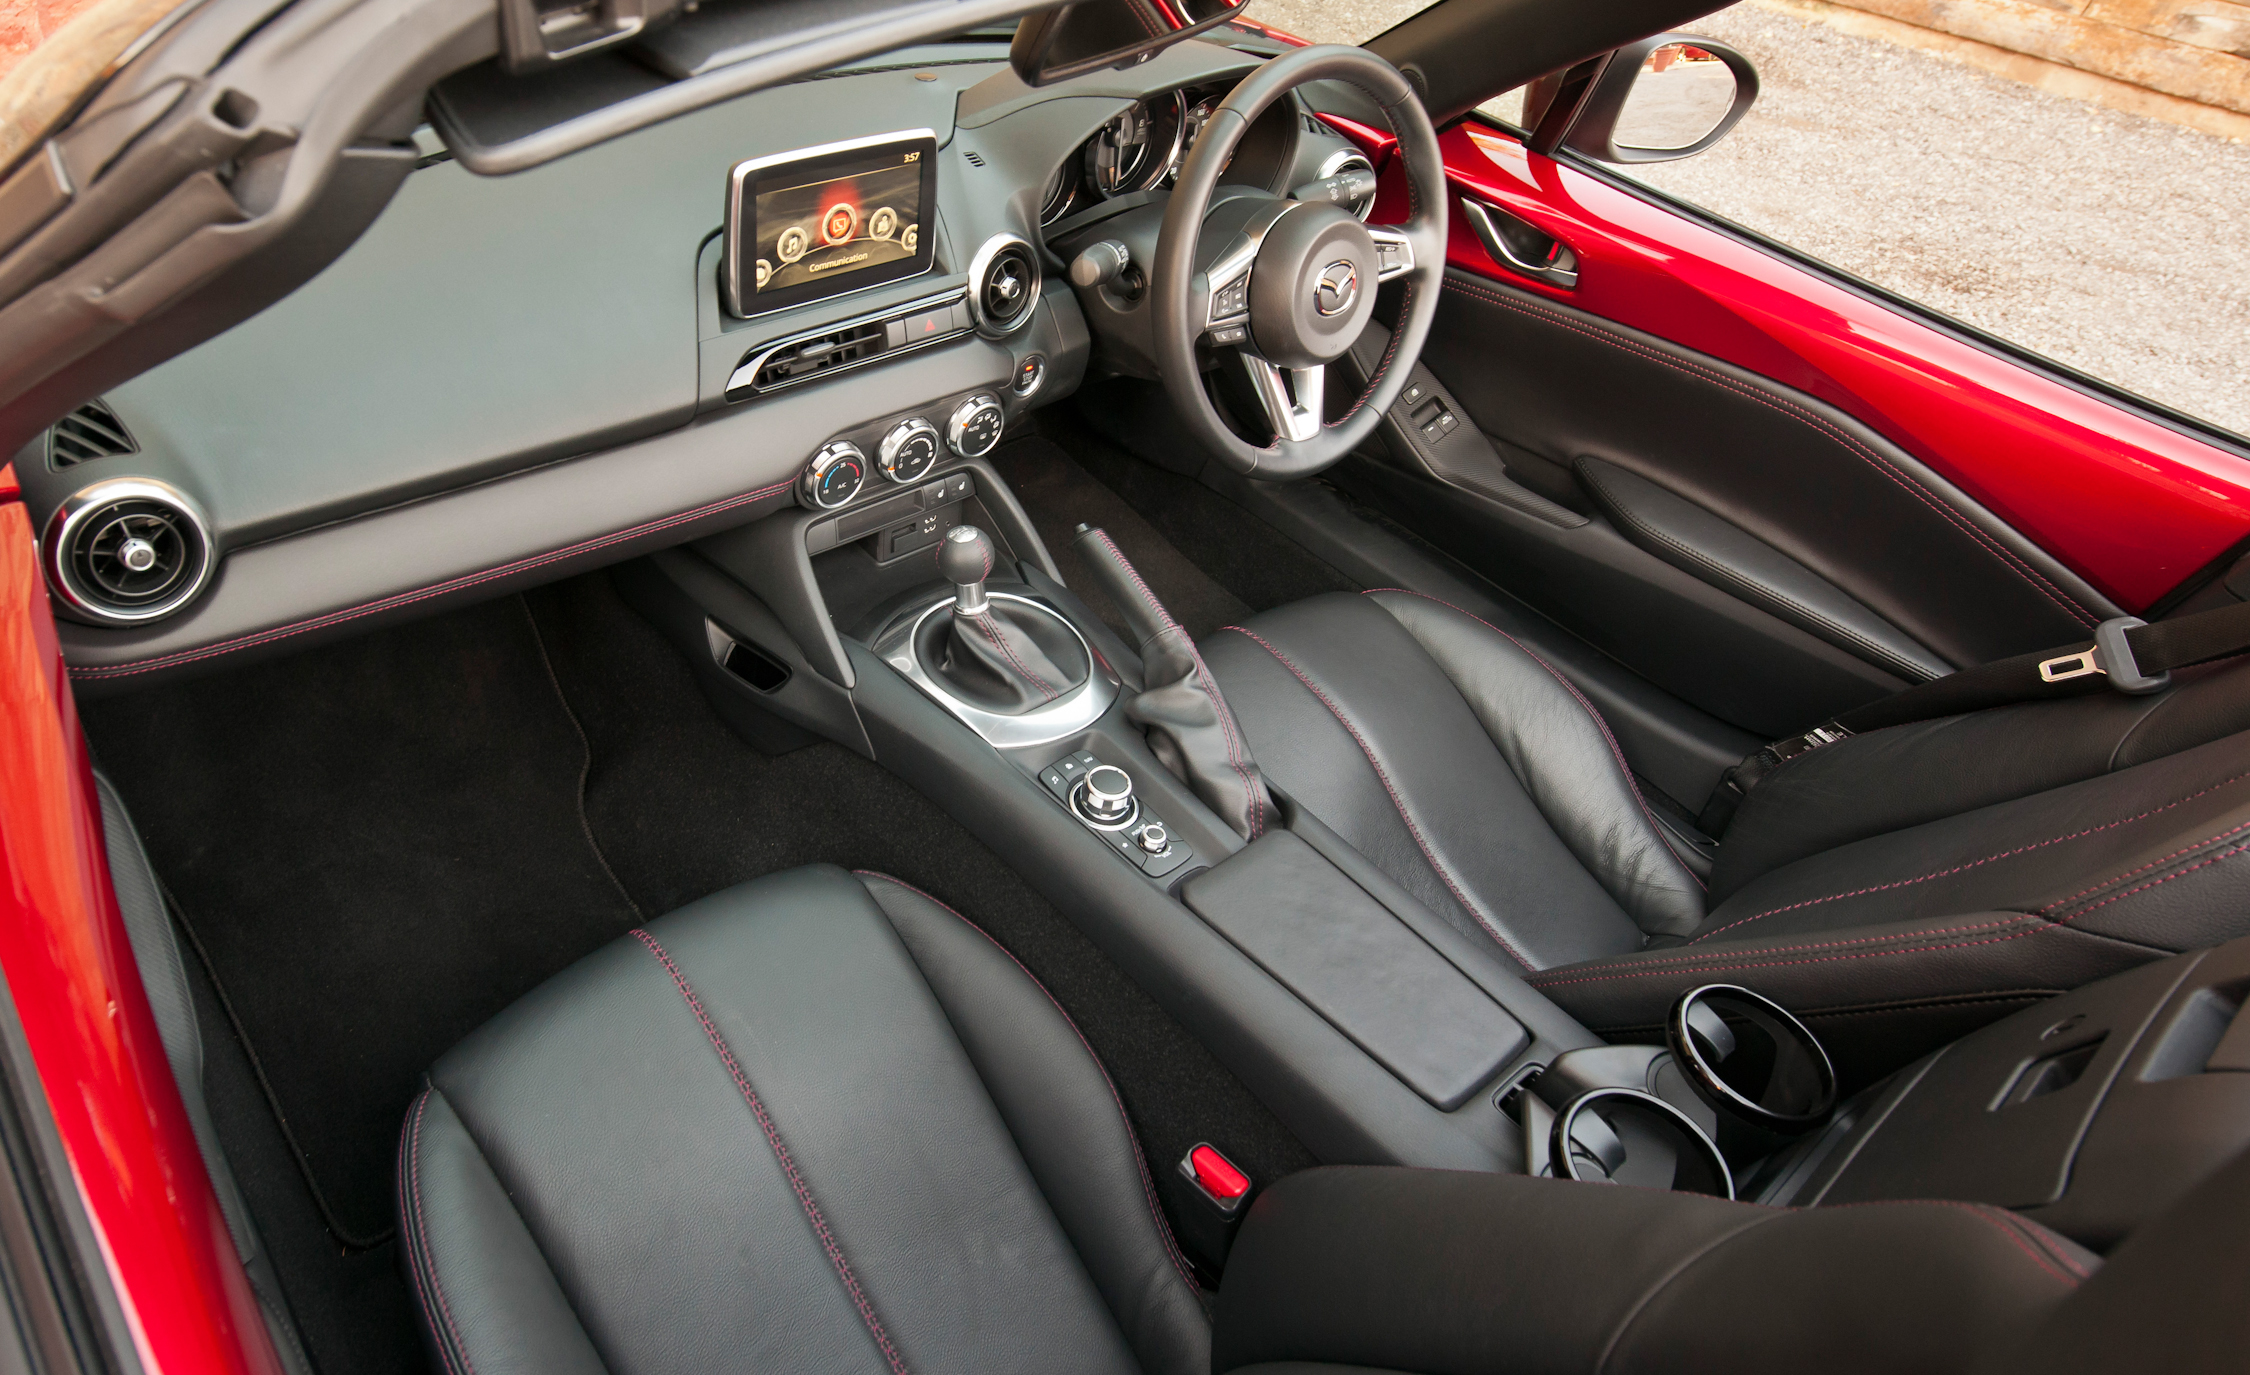 2016 Mazda MX-5 Miata Dashboard and Seats Interior